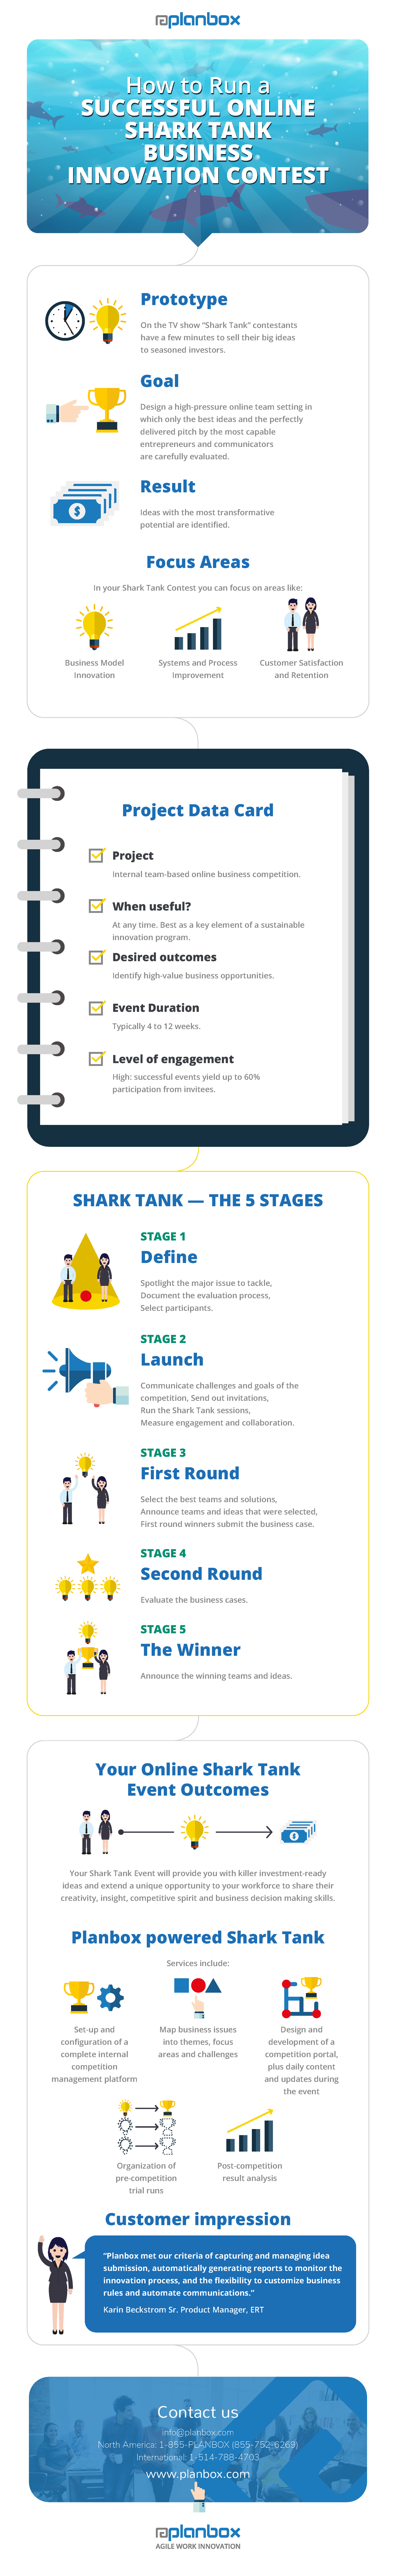 HOW TO RUN A SHARK TANK BUSINESS CONTEST